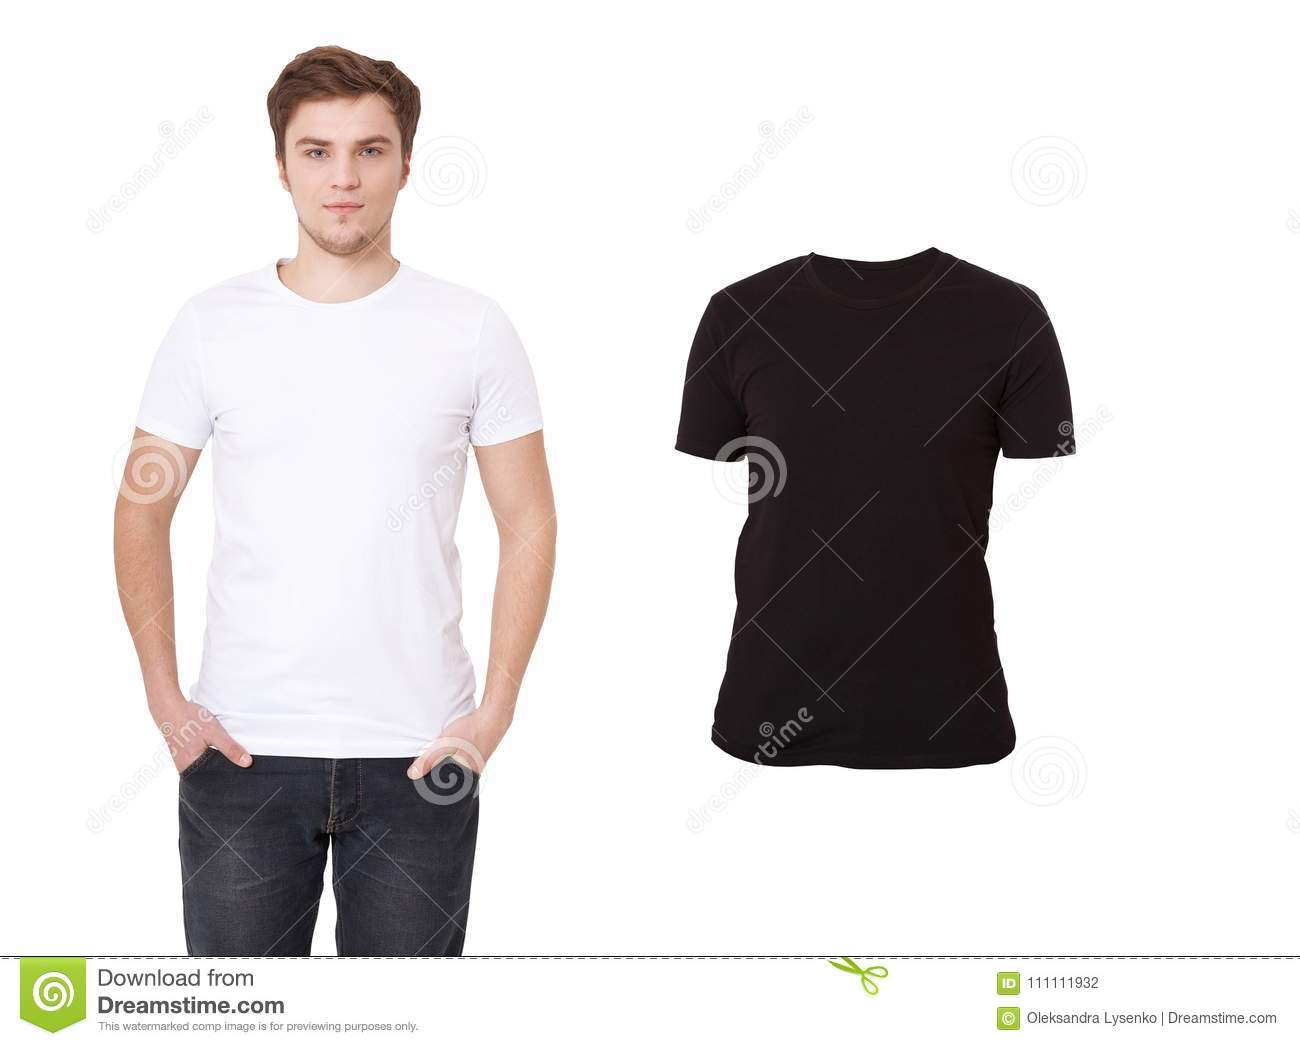 267ec2a67783 T-shirt template. Front view. Mock up isolated on white background. Blank  shirt